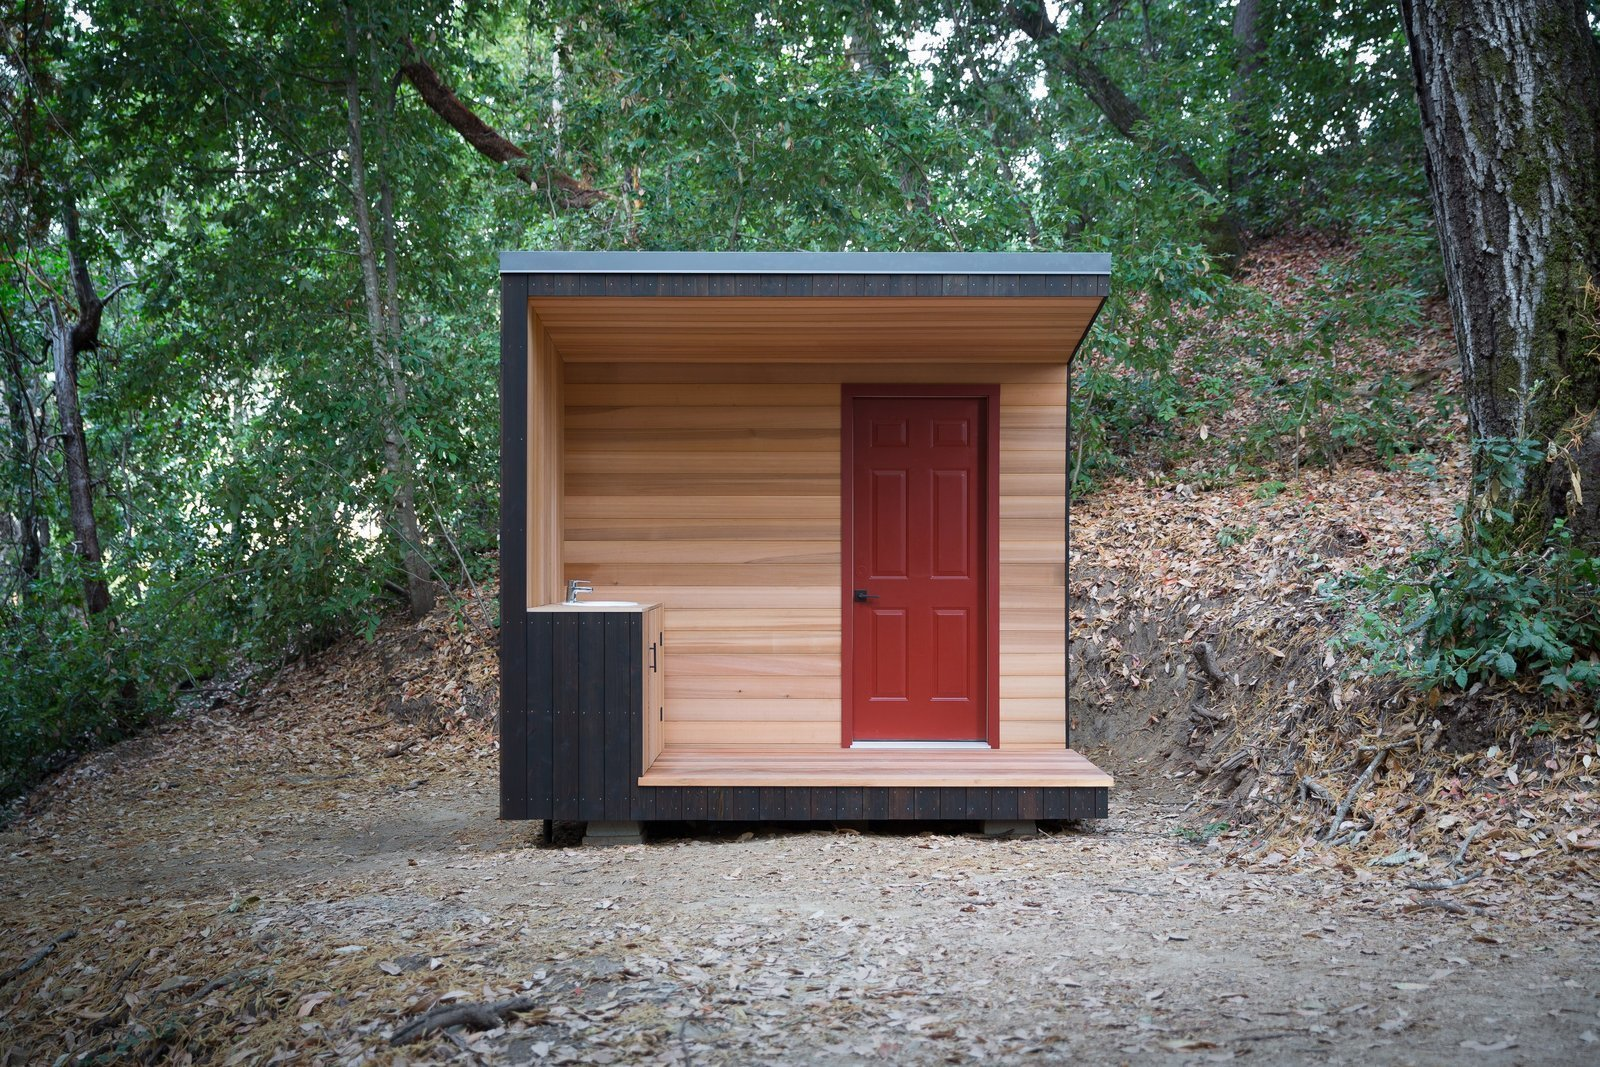 Diy project how to build your own modern outhouse dwell for Build your own modern home